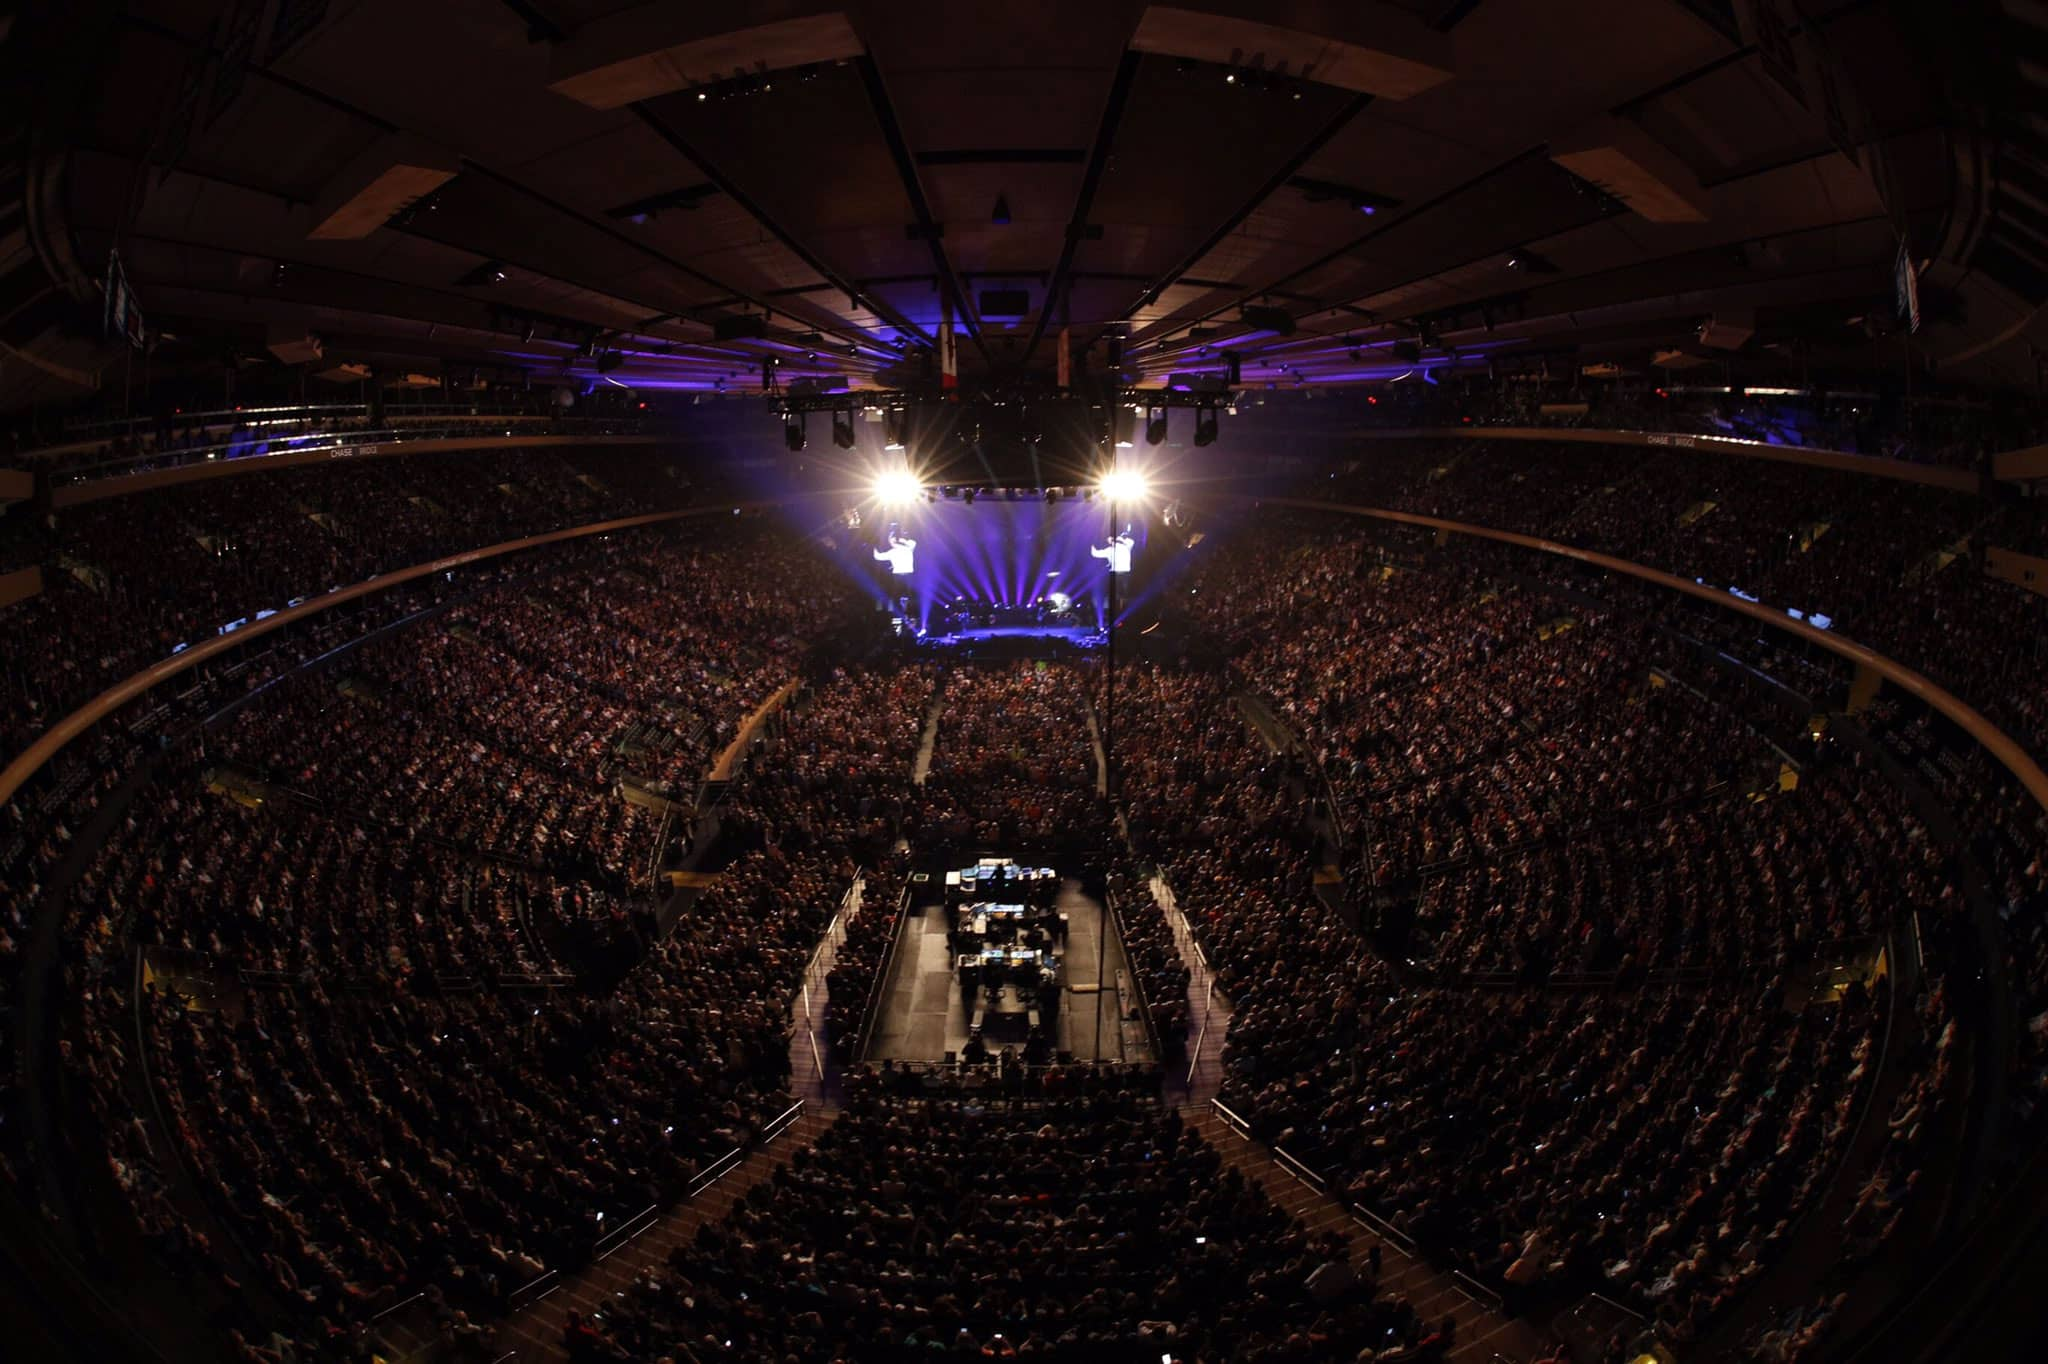 Paul Mccartney Live At Madison Square Garden New York City The Beatles Bible